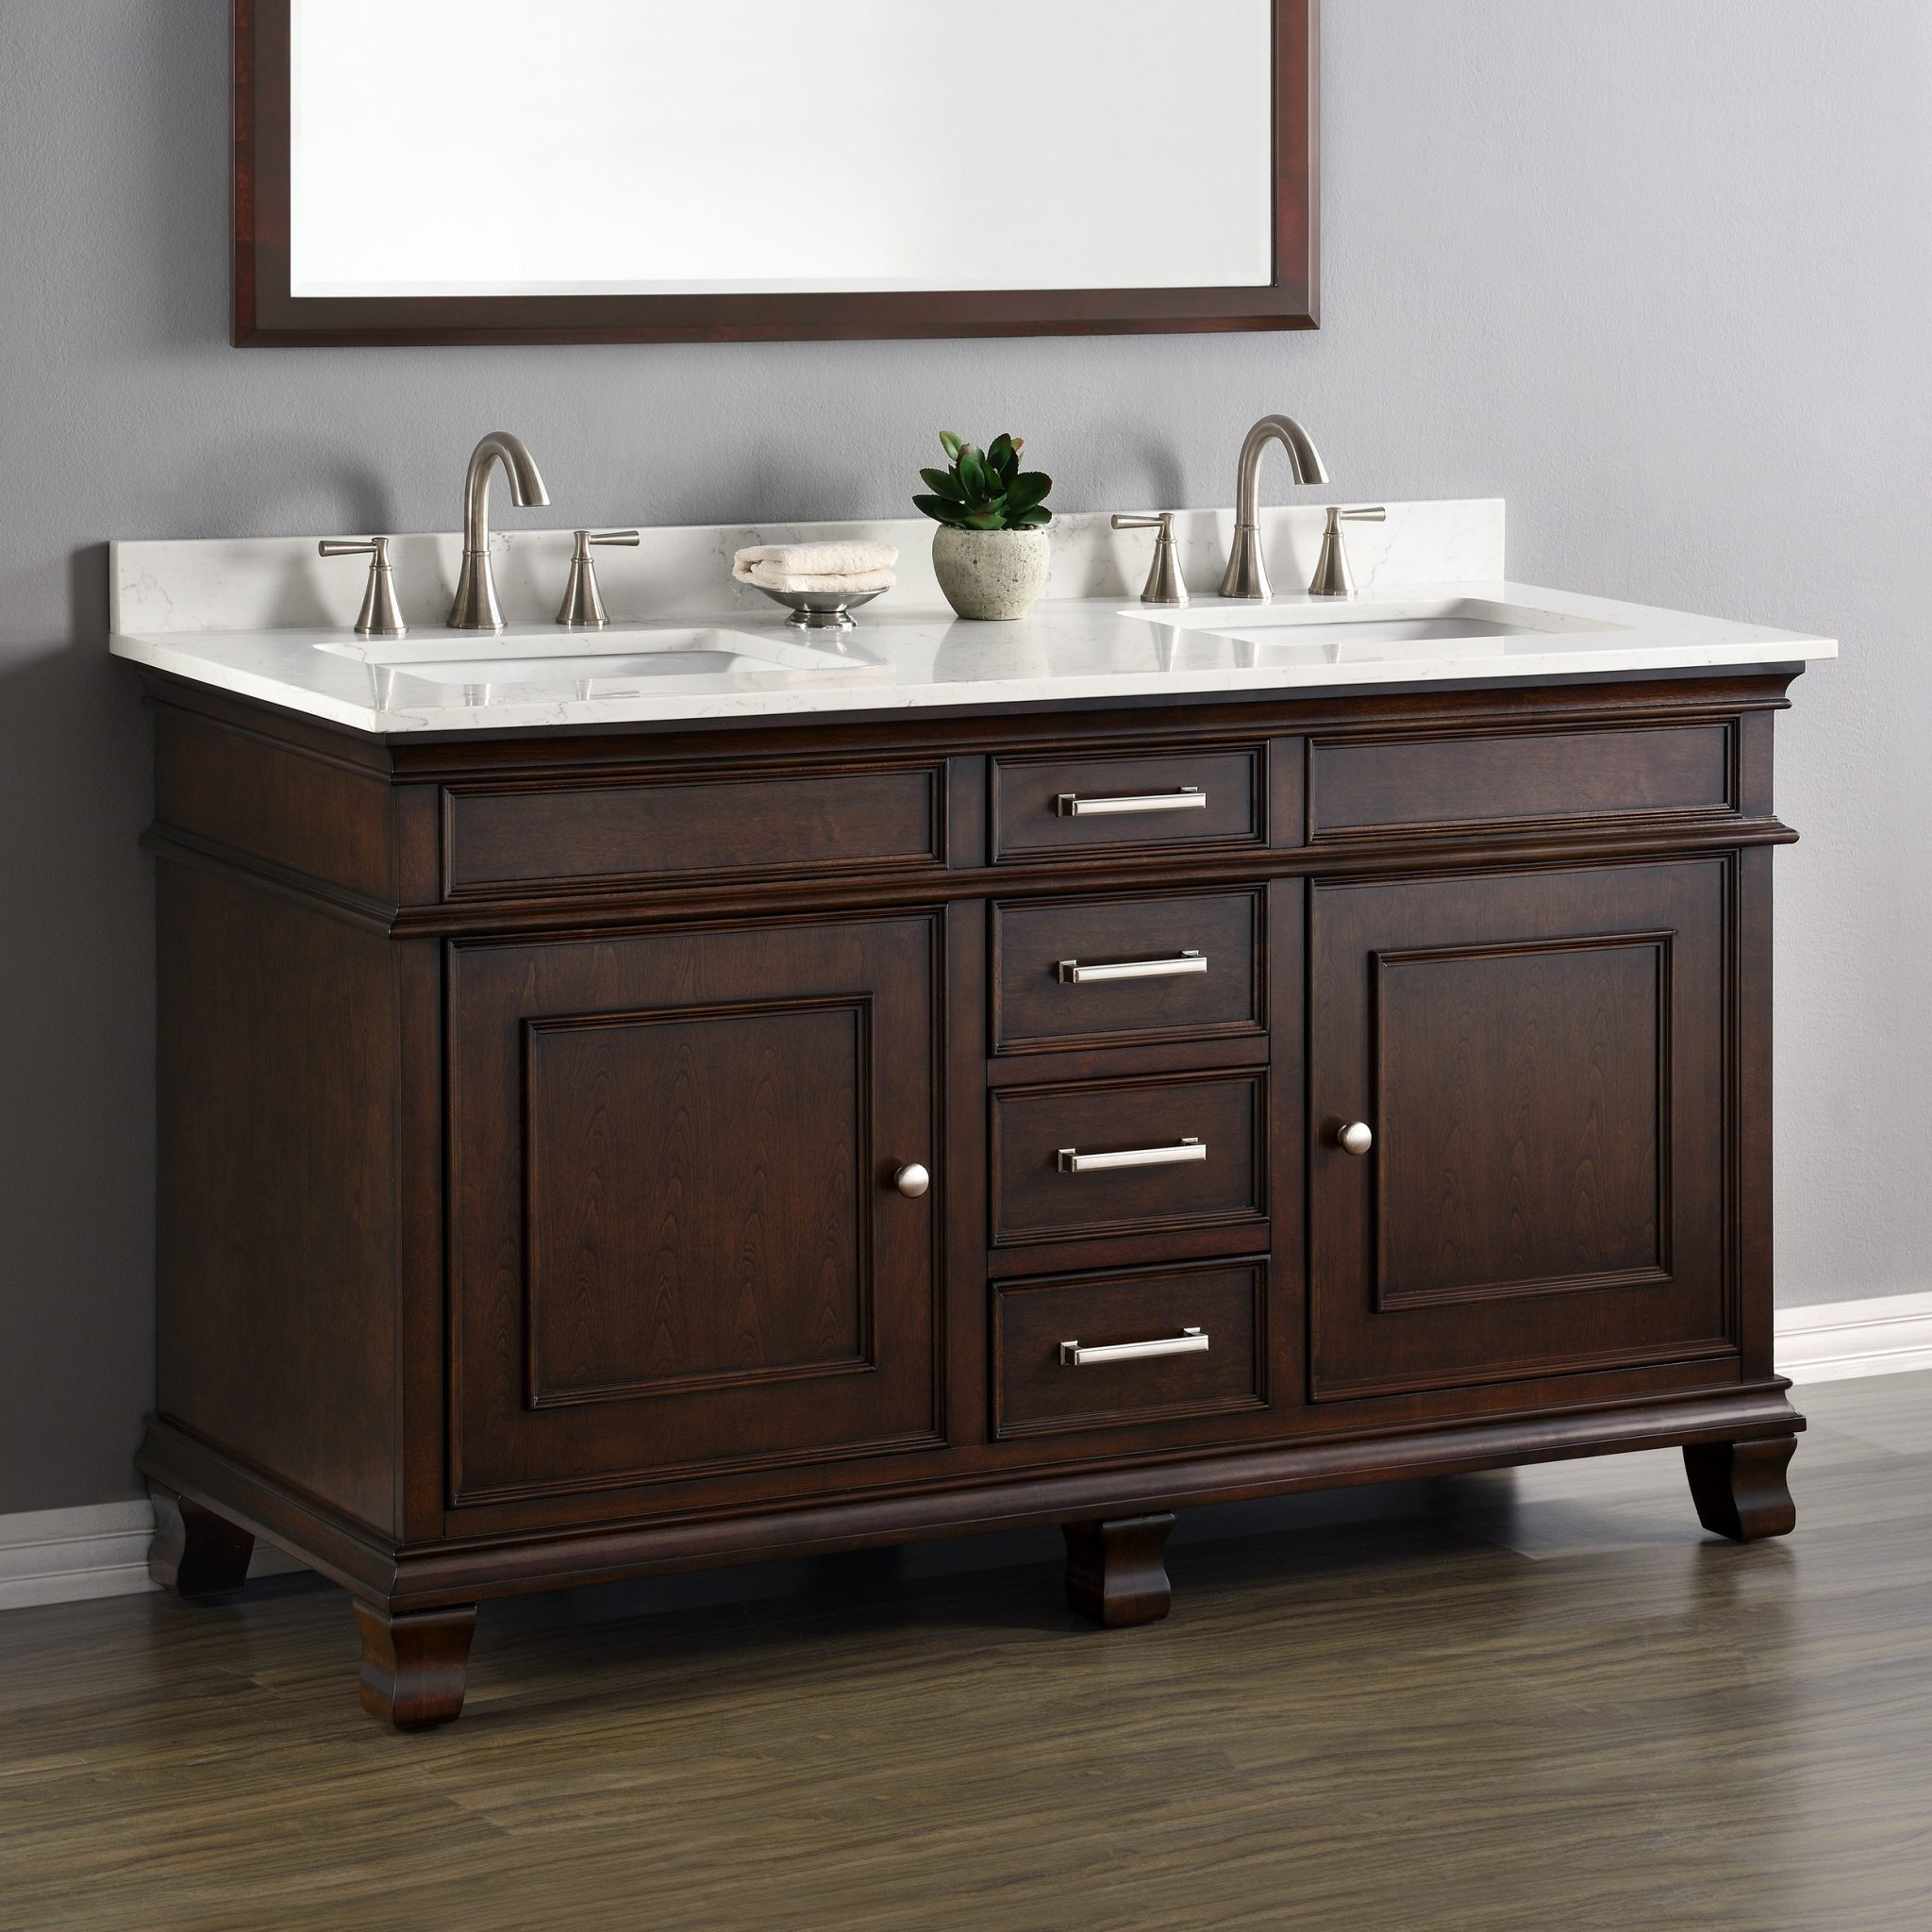 60 Double Sink Bathroom Vanity. Camden 60  Double Sink Vanity Mission Hills Furniture